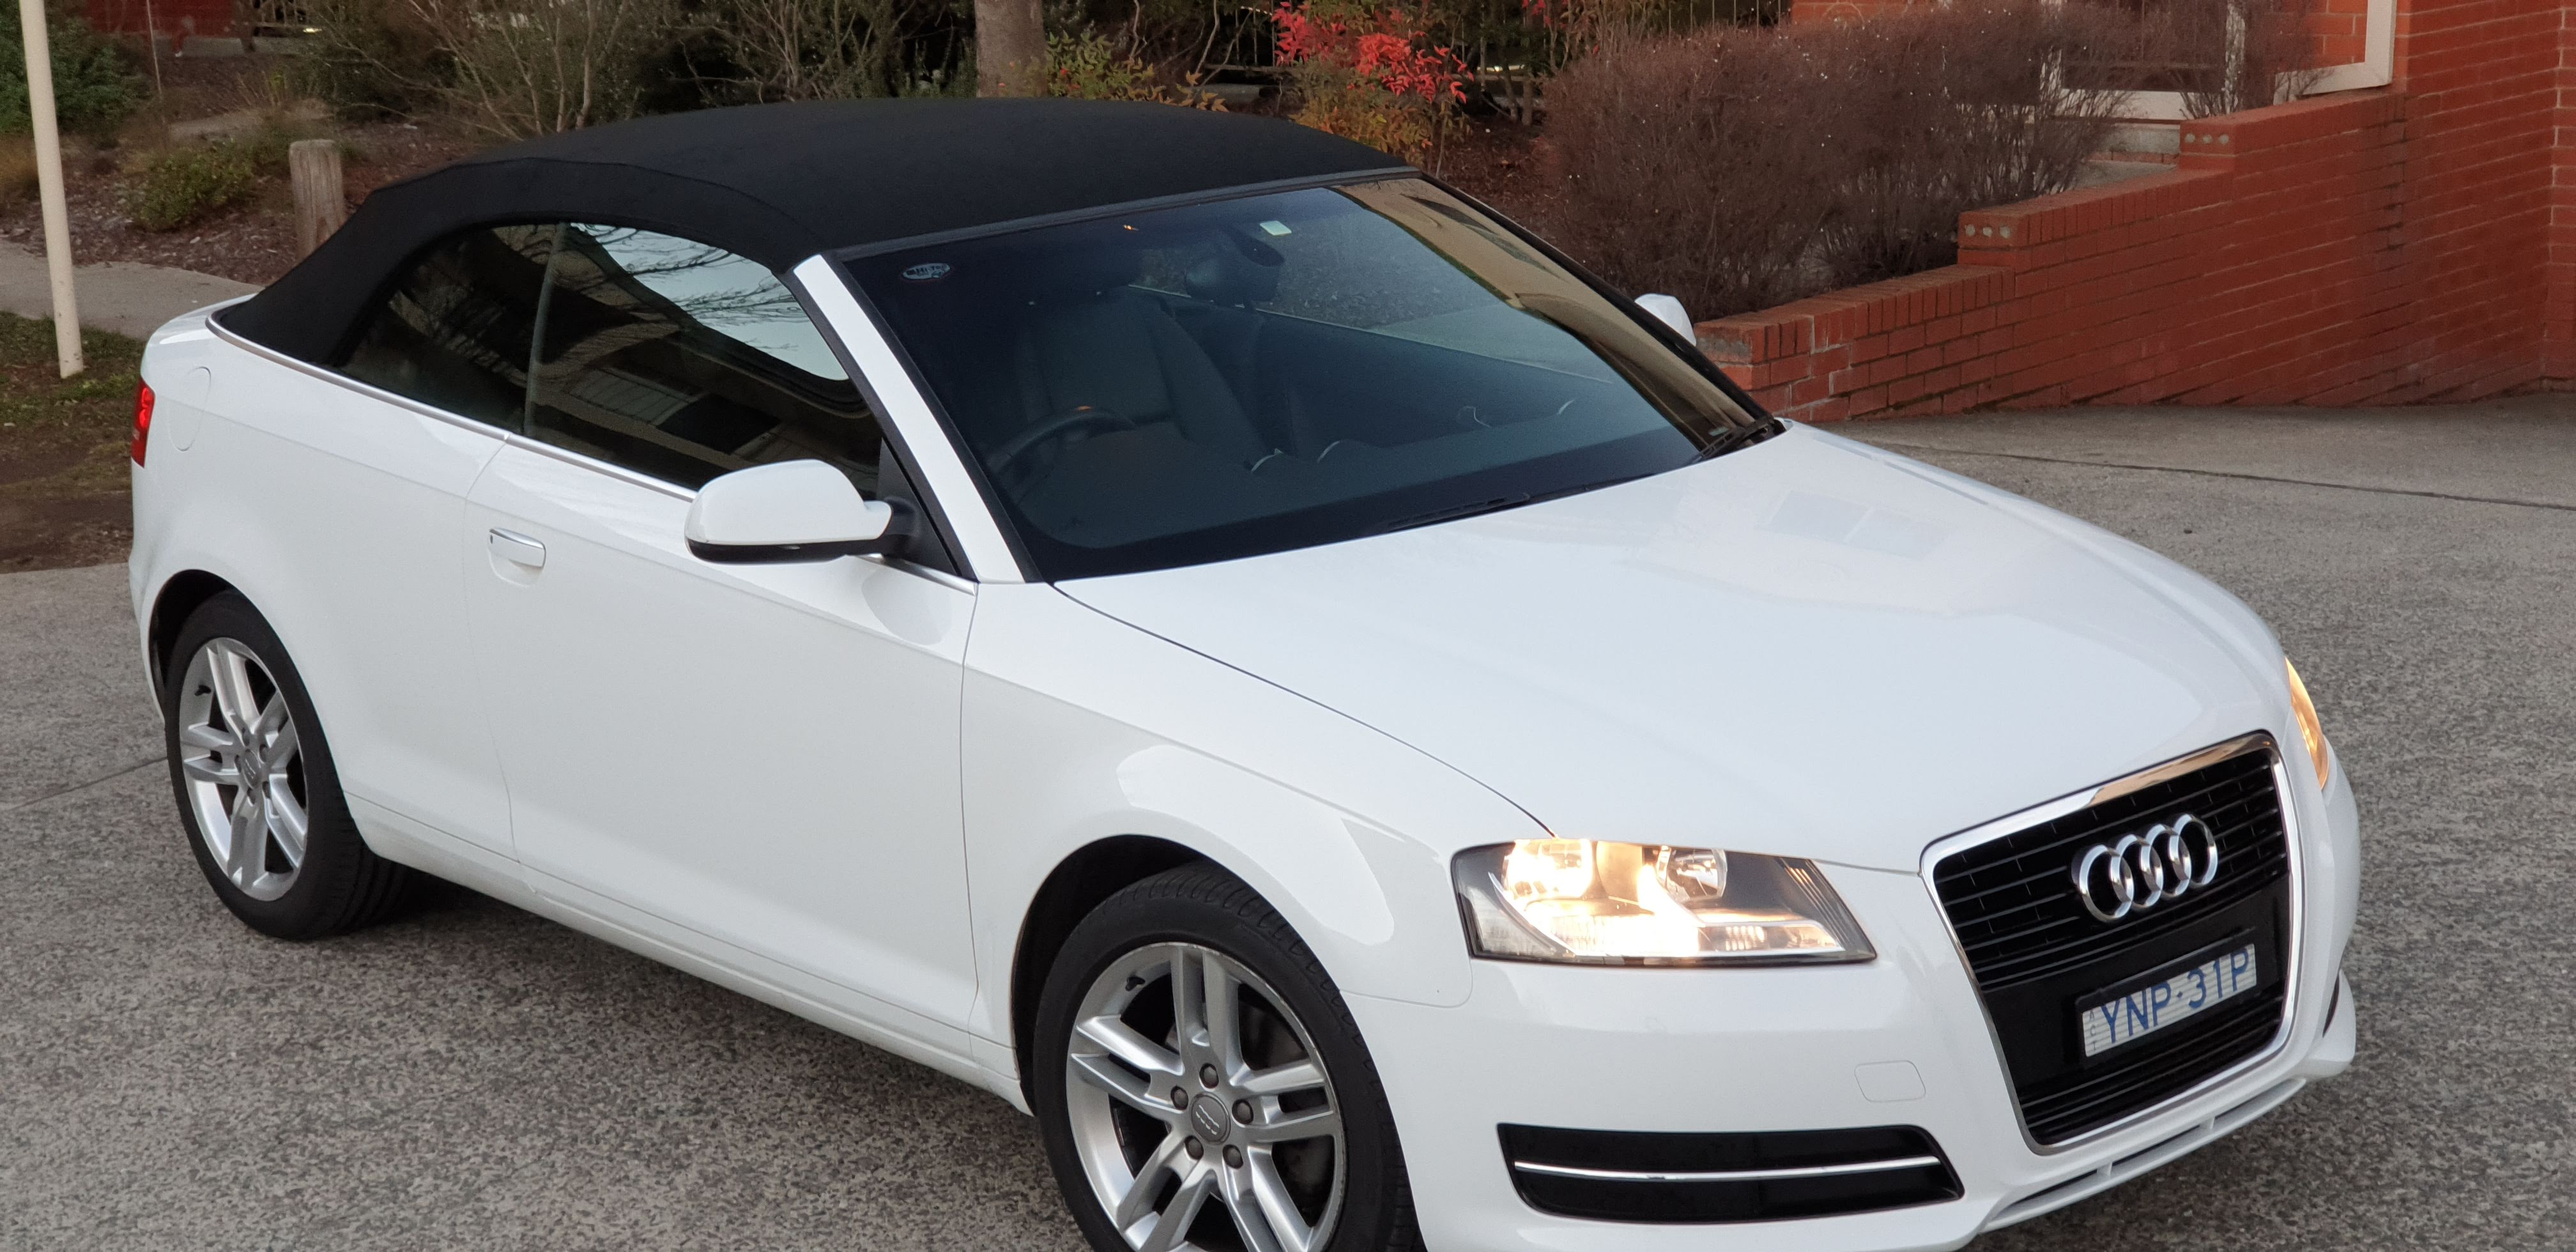 Picture of Moahit's 2012 Audi A3